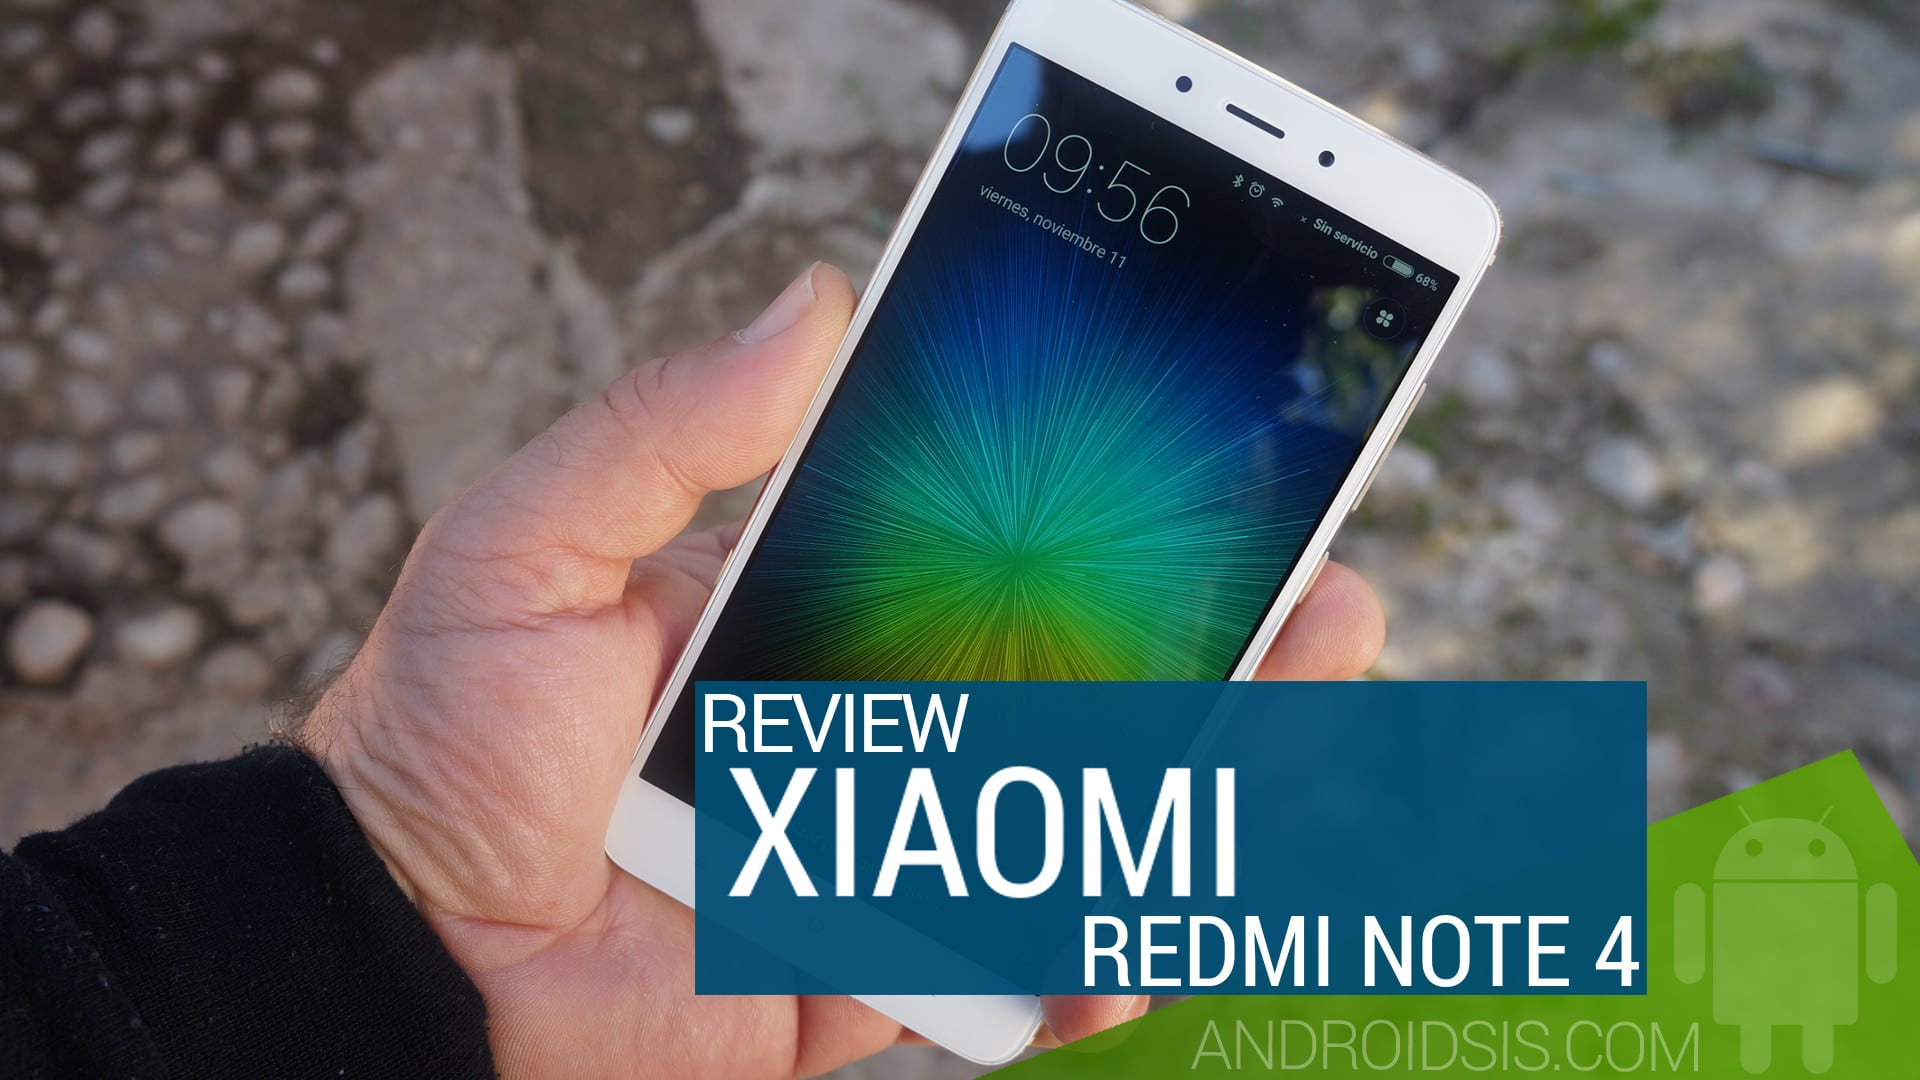 Review en Español del Xiaomi Redmi Note 4